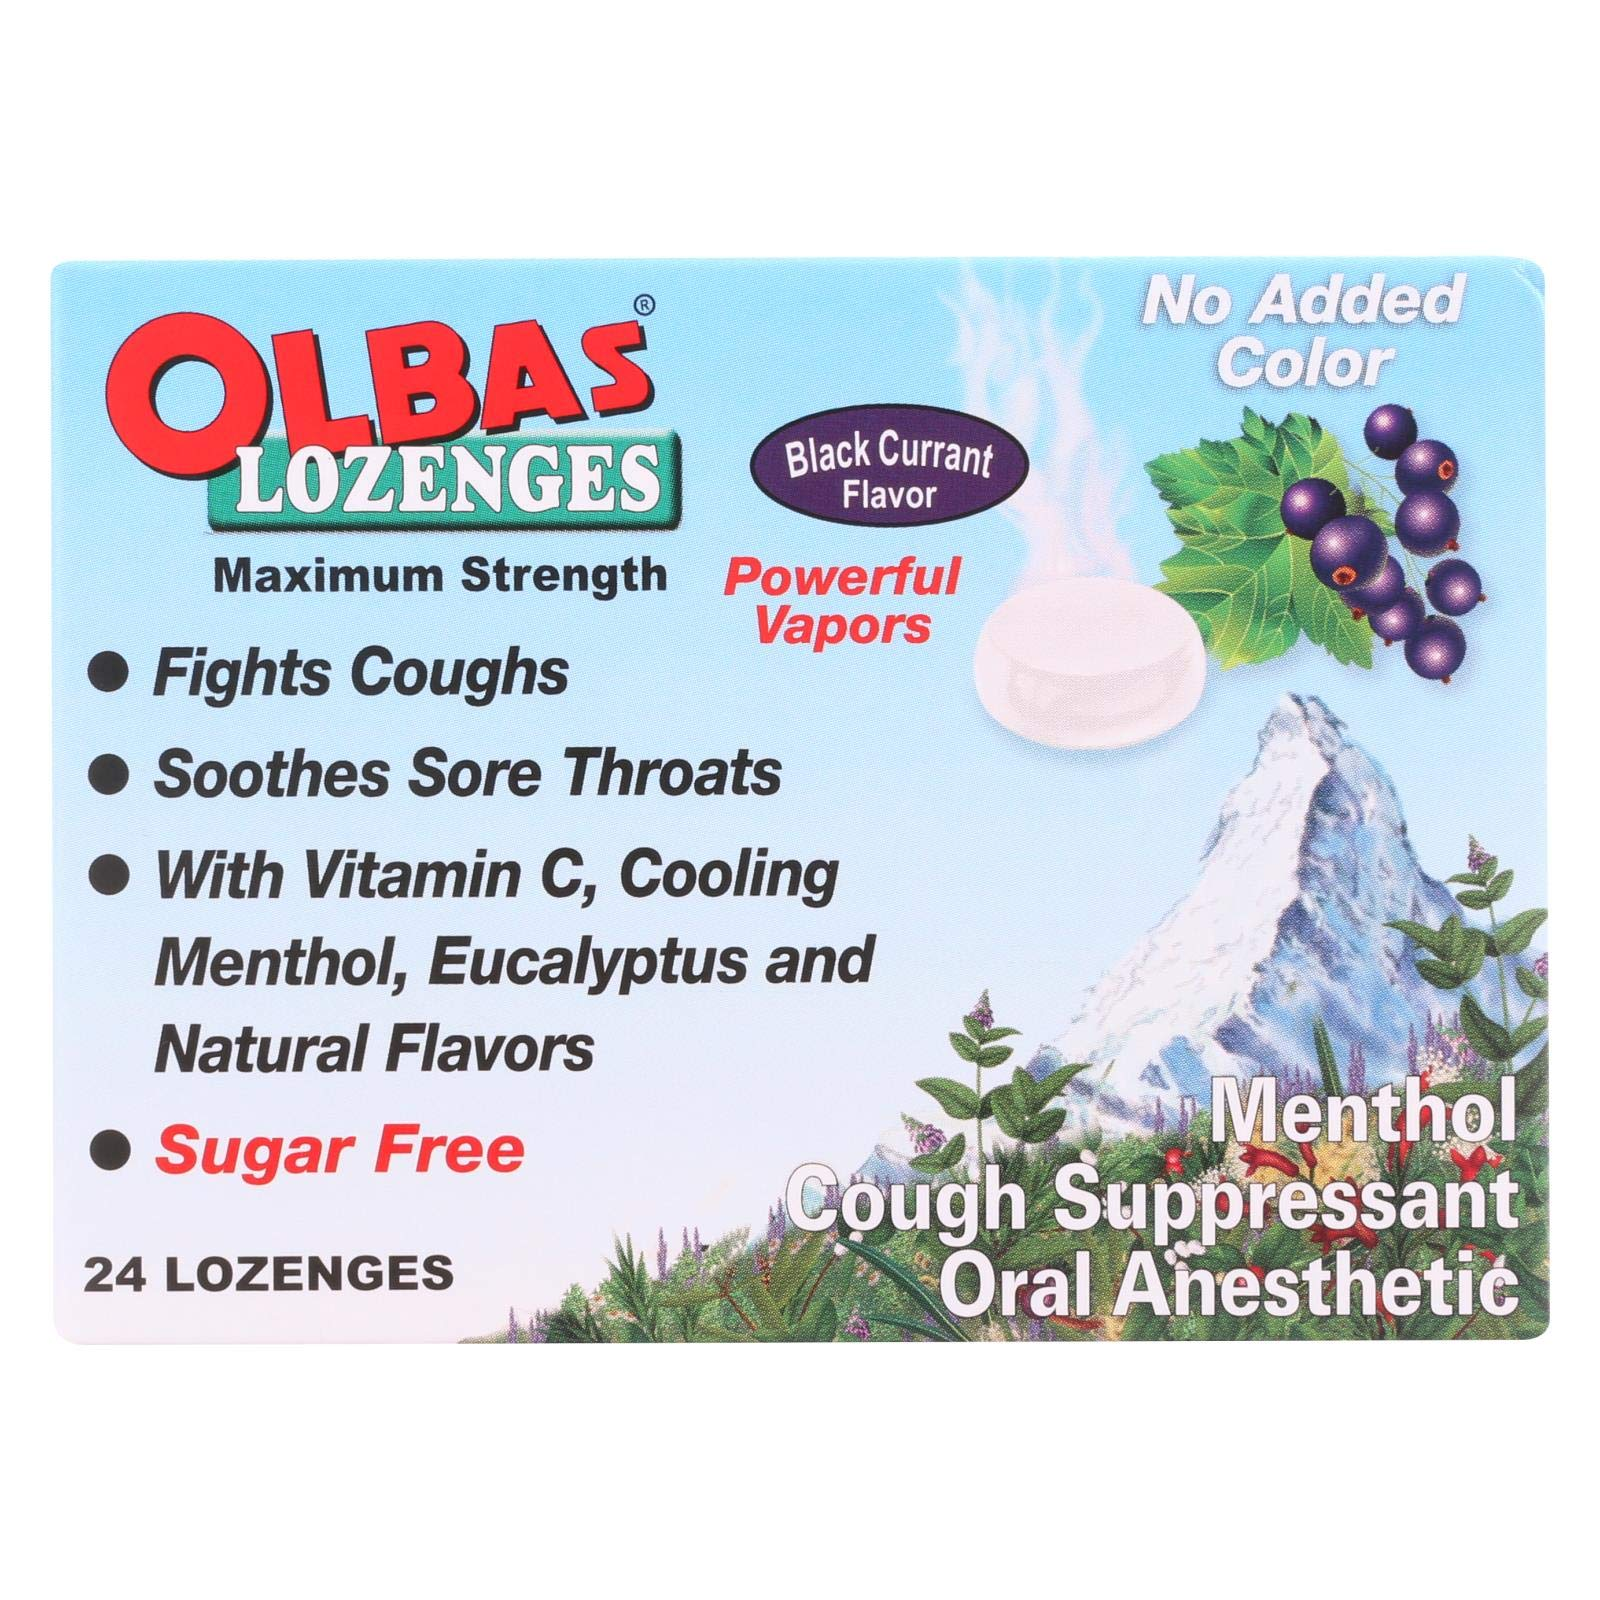 Olbas Lozenge, 24 per pack - 12 packs per case. by Olbas